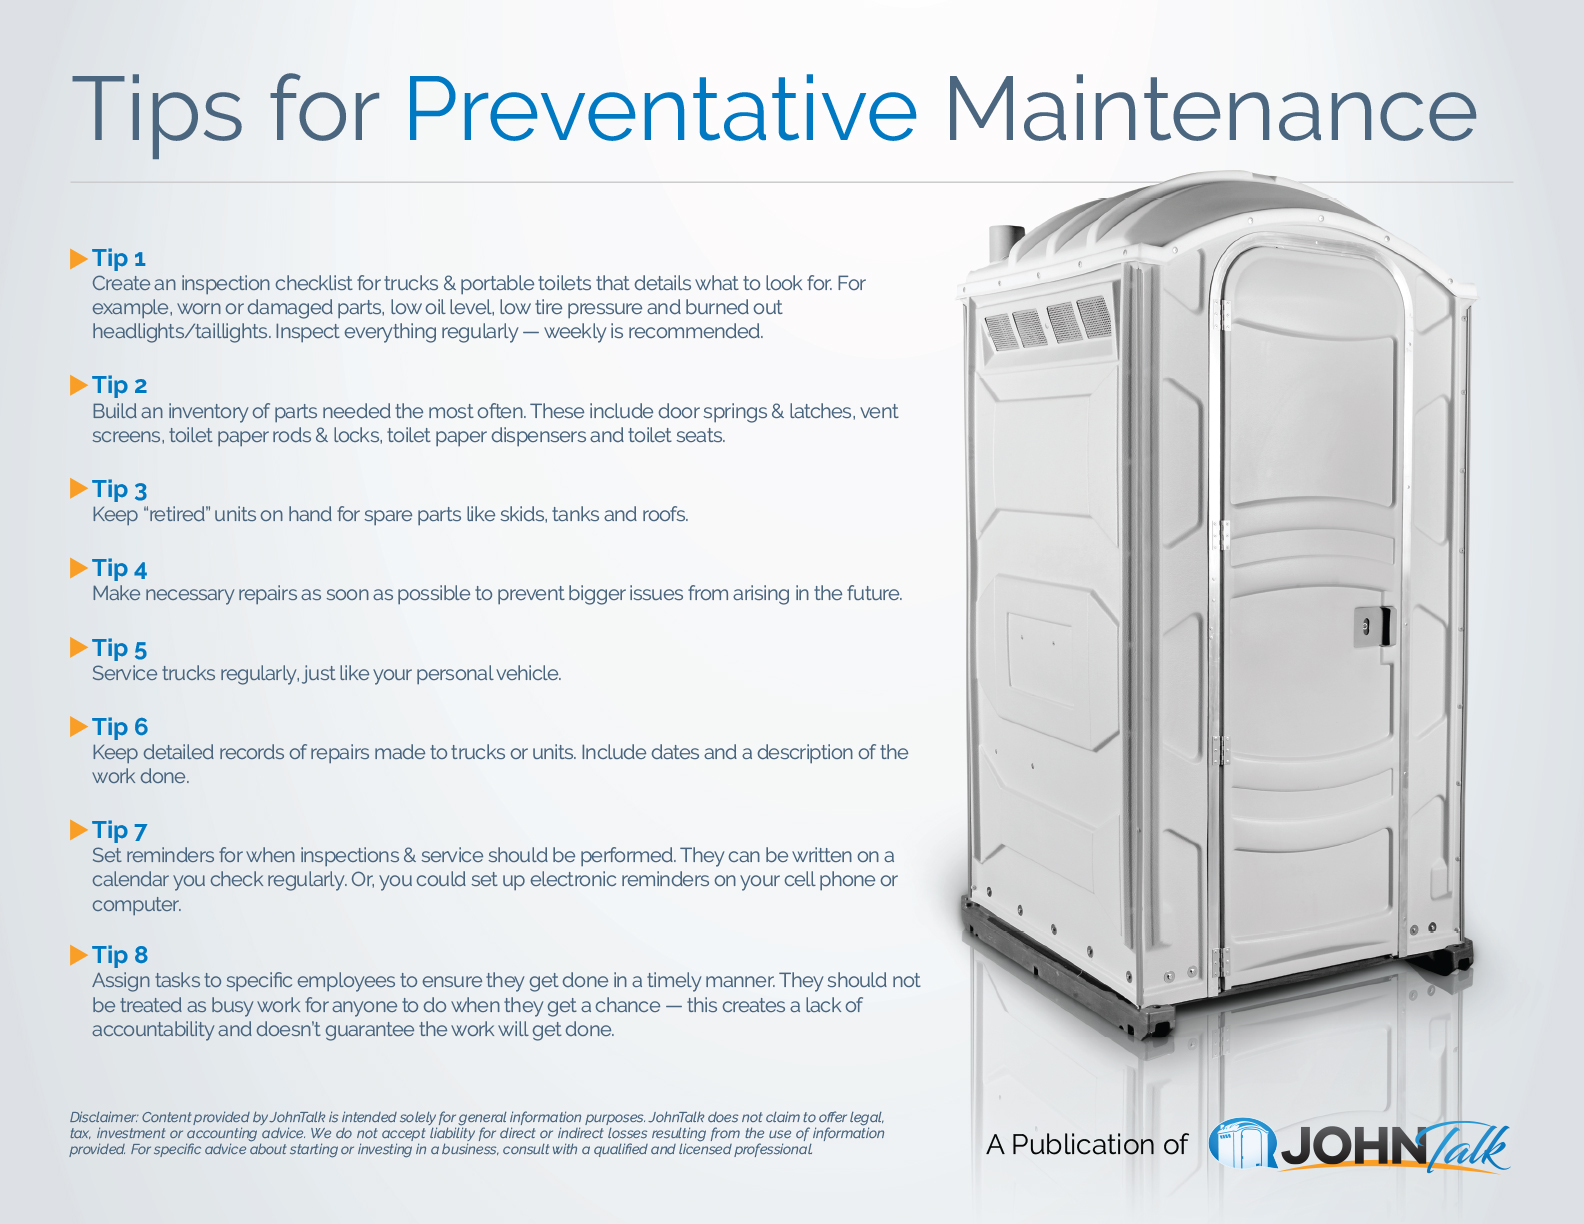 Tips for Preventative Maintenance